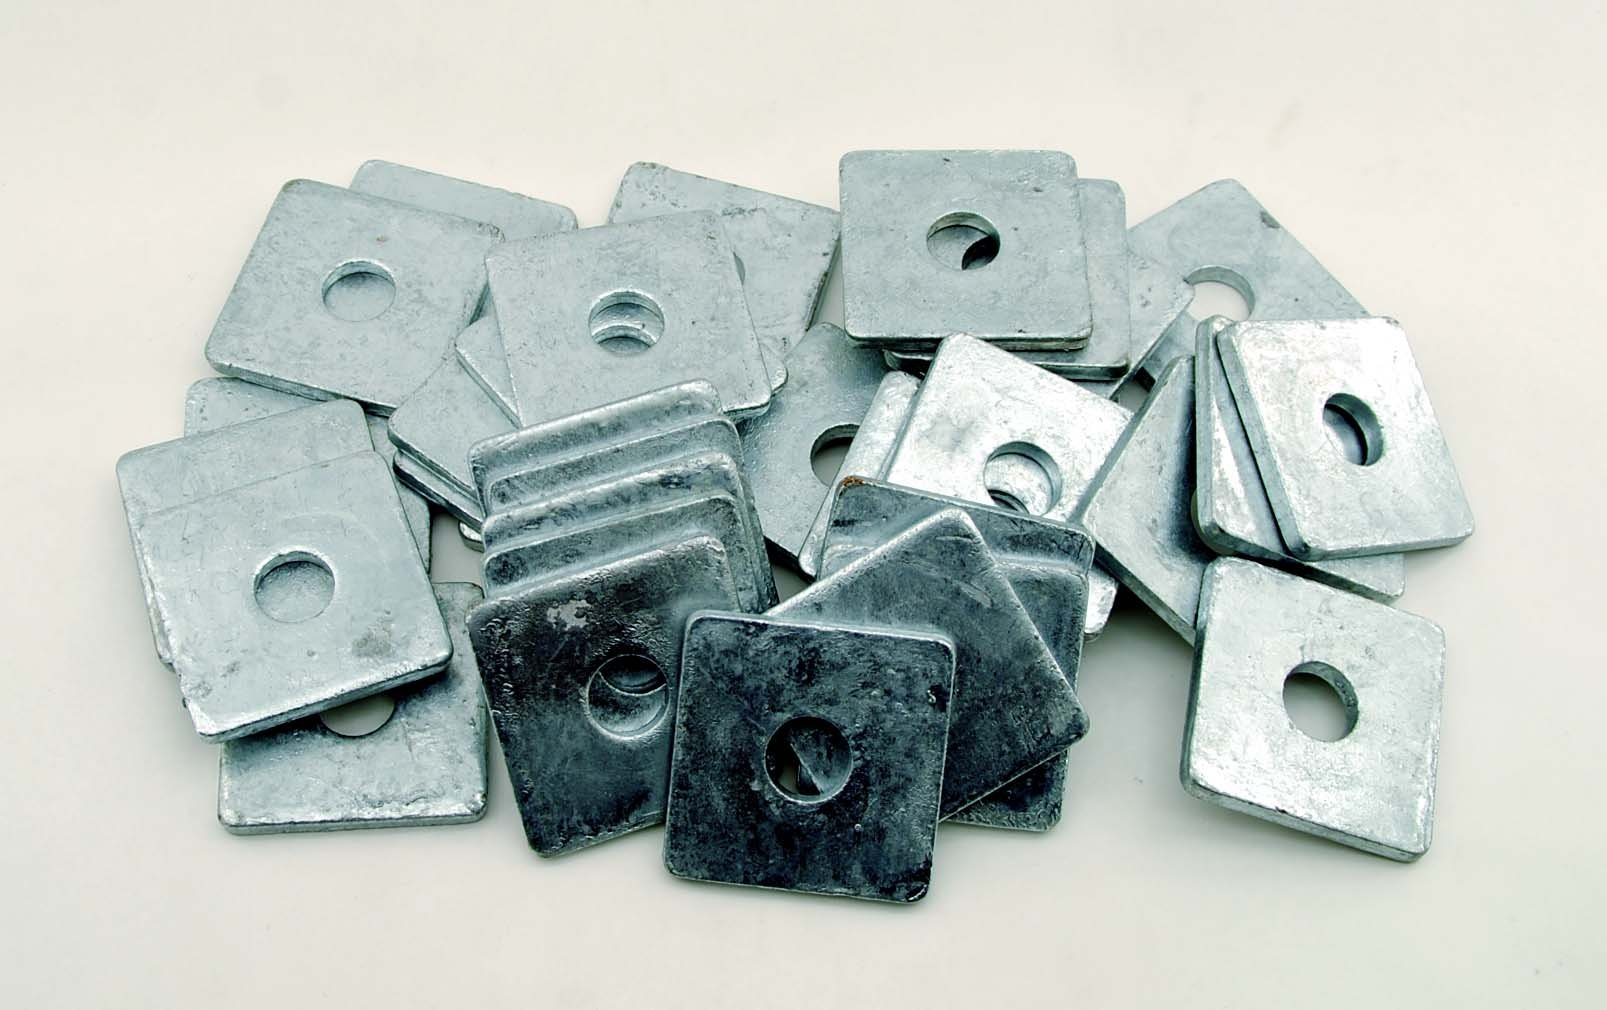 (10) Galvanized 3/4 x 2-3/4 Square Plate Washers 5/16 Thick by Lexar Industrial